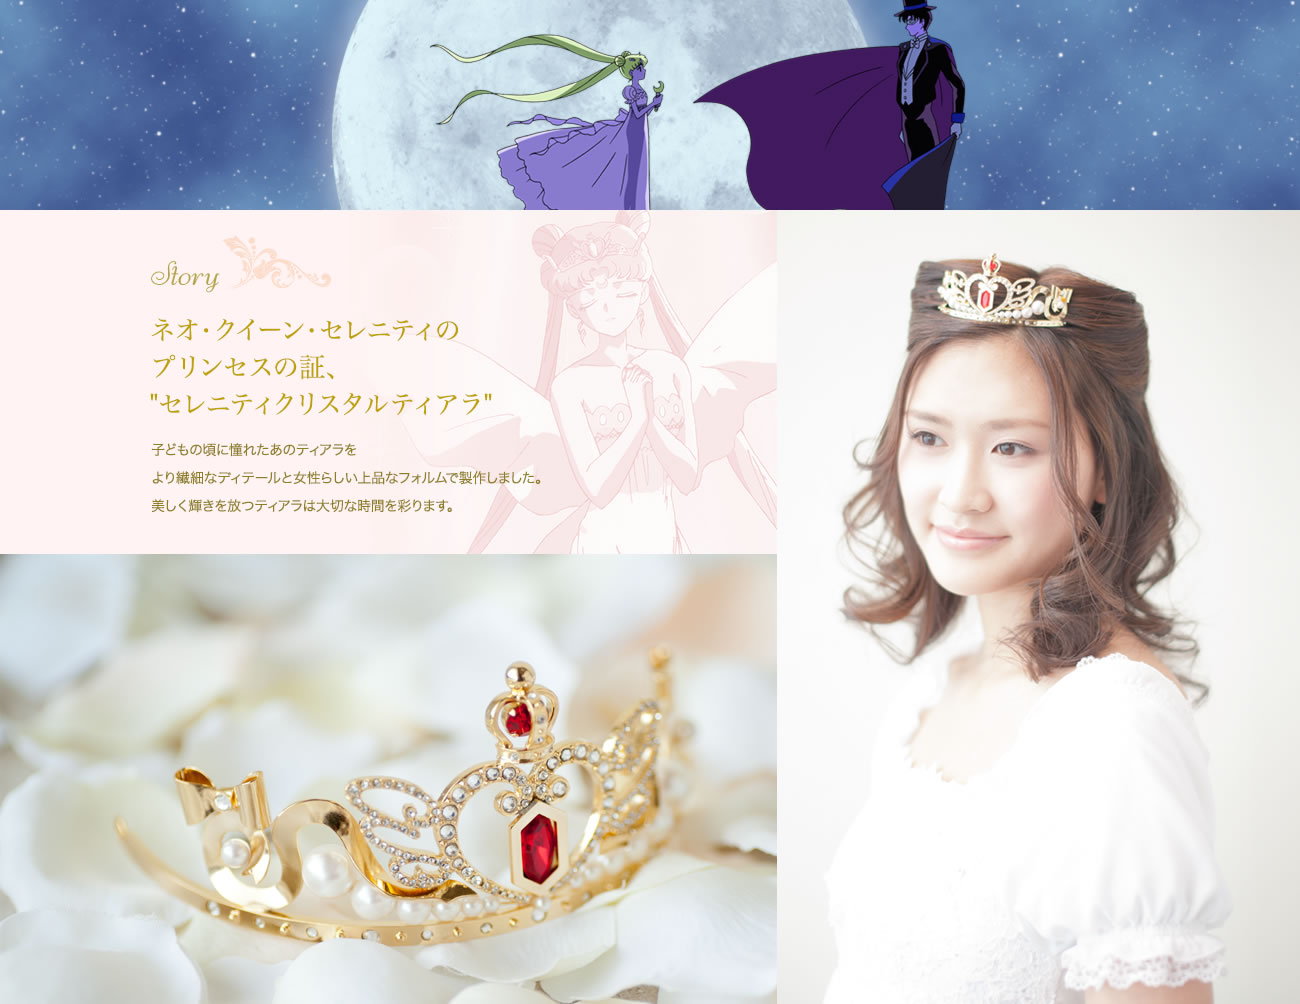 """sailor moon"" ""sailor moon merchandise"" ""sailor moon tiara"" ""sailor moon crown"" ""neo queen serenity"" jewelry gold pearl ""sailor moon toy"" bandai anime japan shop 2015"